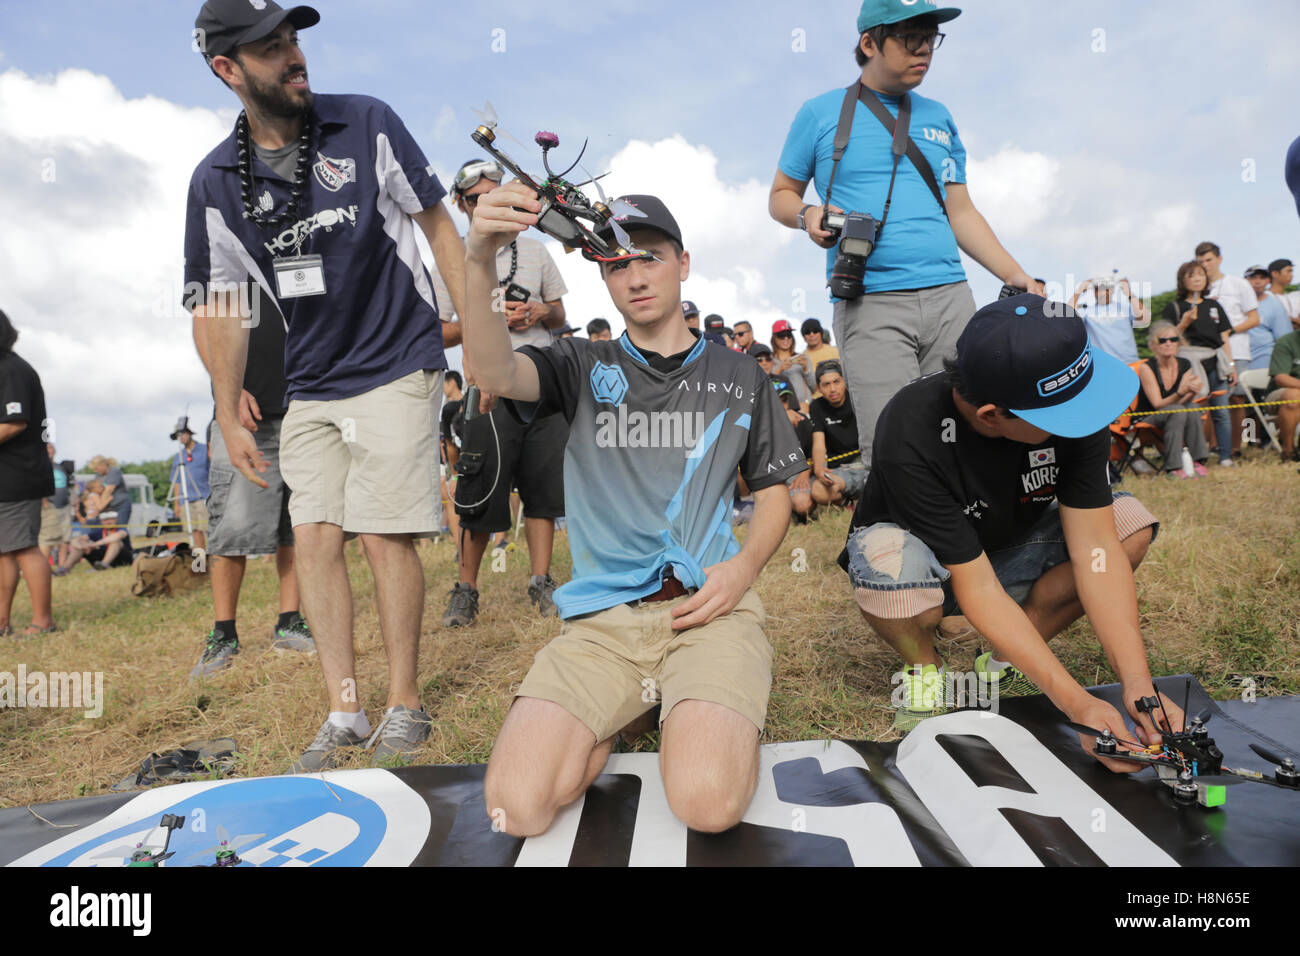 Drone Worlds 2016.  Drone racing competition, 2016.  Held on Koaloa ranch, O'hau island, Hawaii.  Pictured: - Stock Image